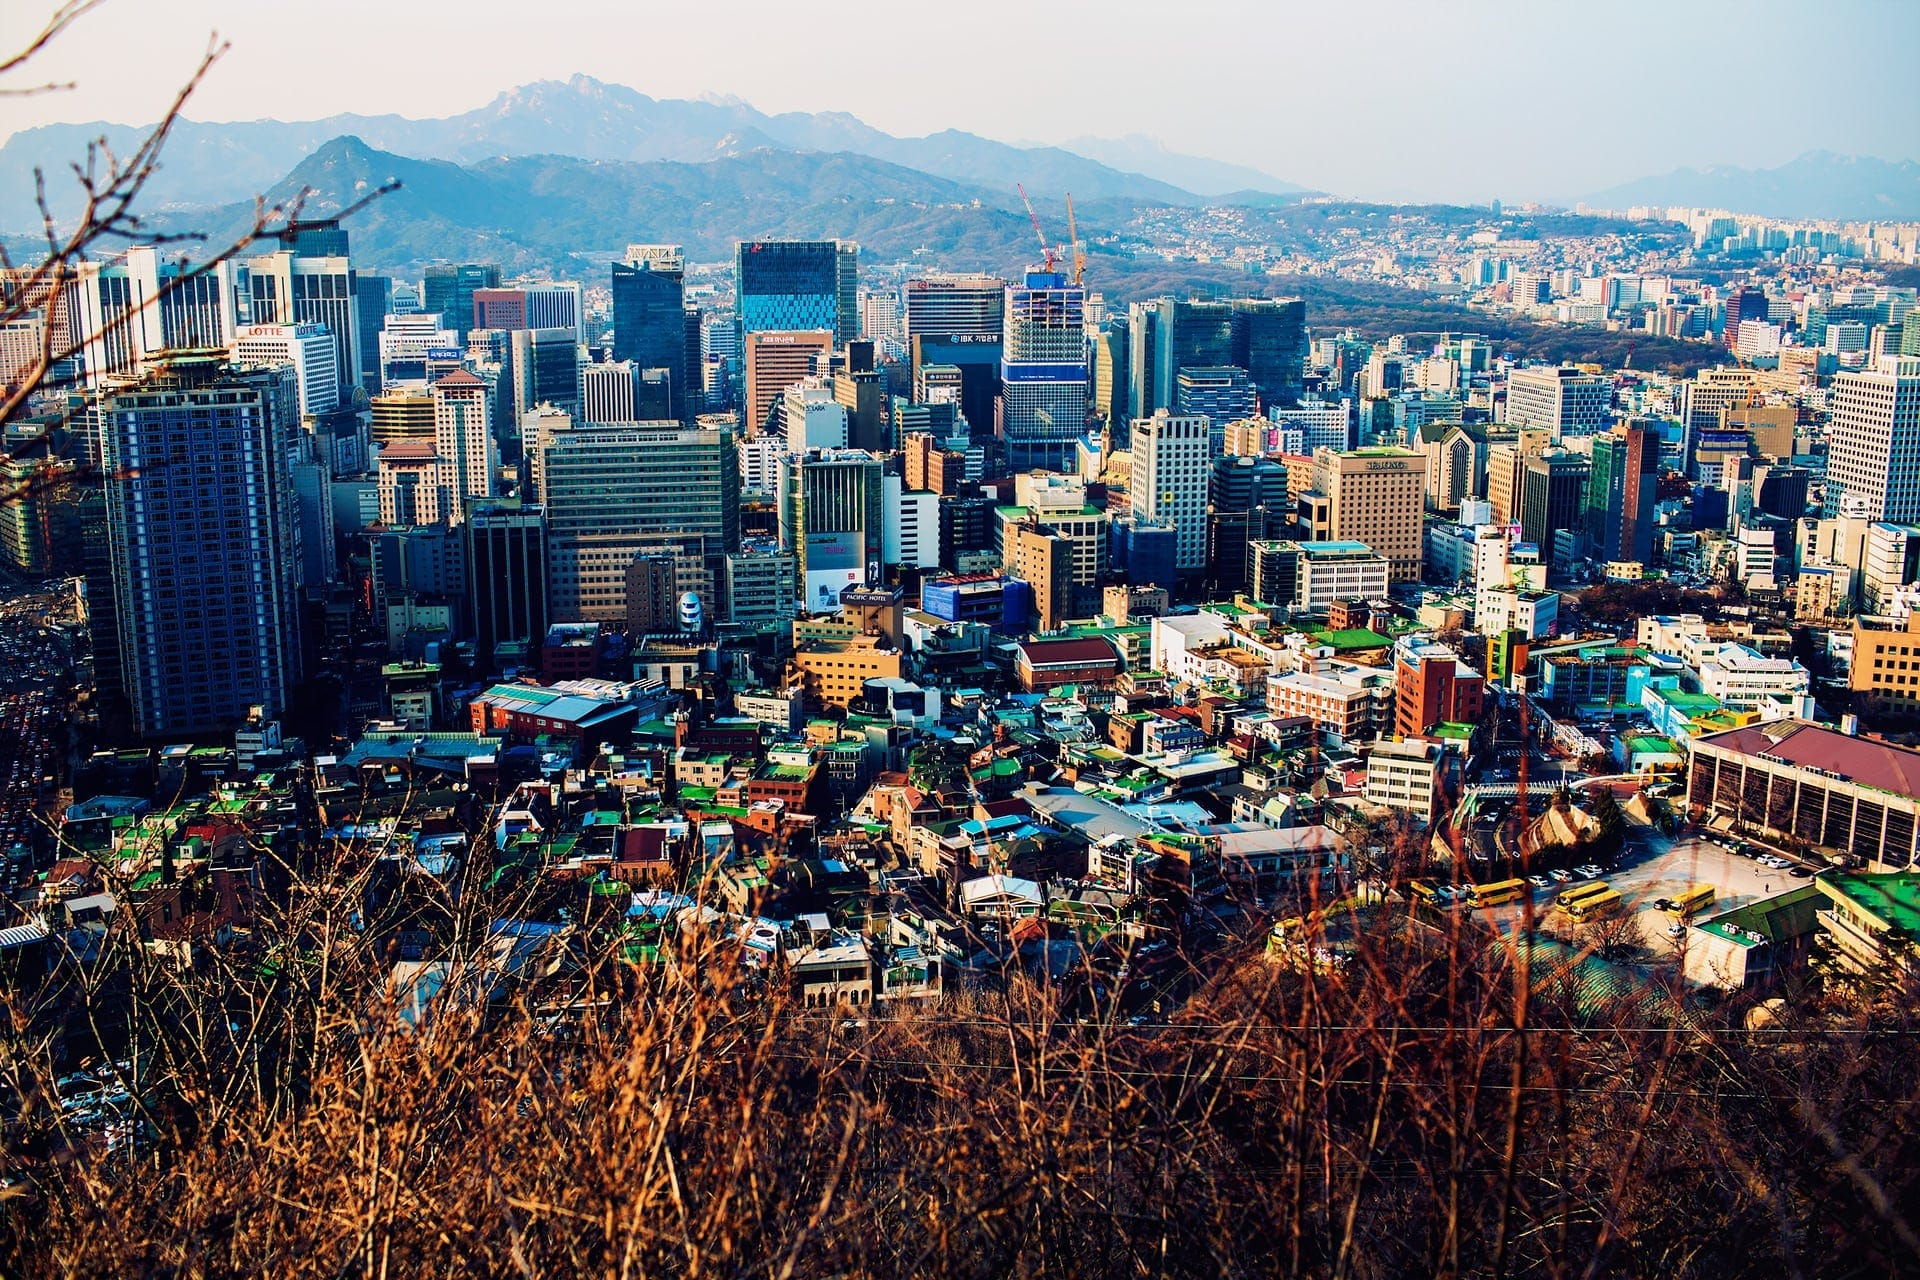 View of the city from N Seoul Tower viewpoint